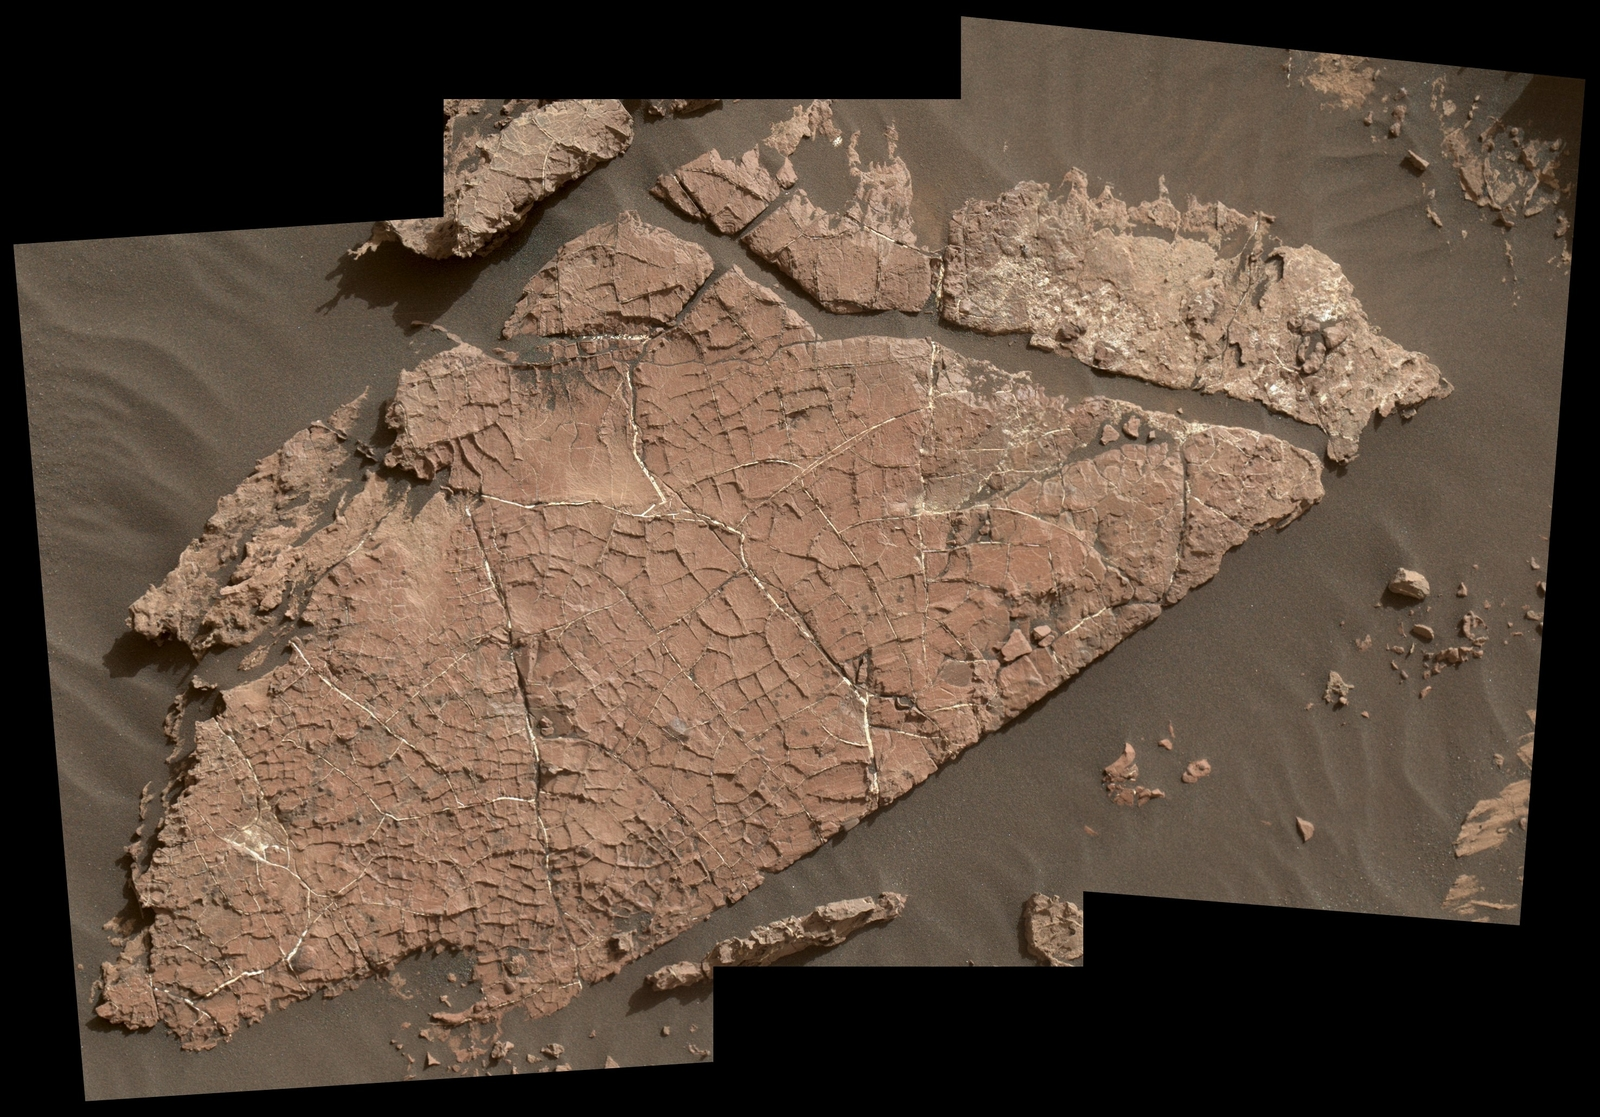 Possible Mud Cracks Preserved in Martian Rock